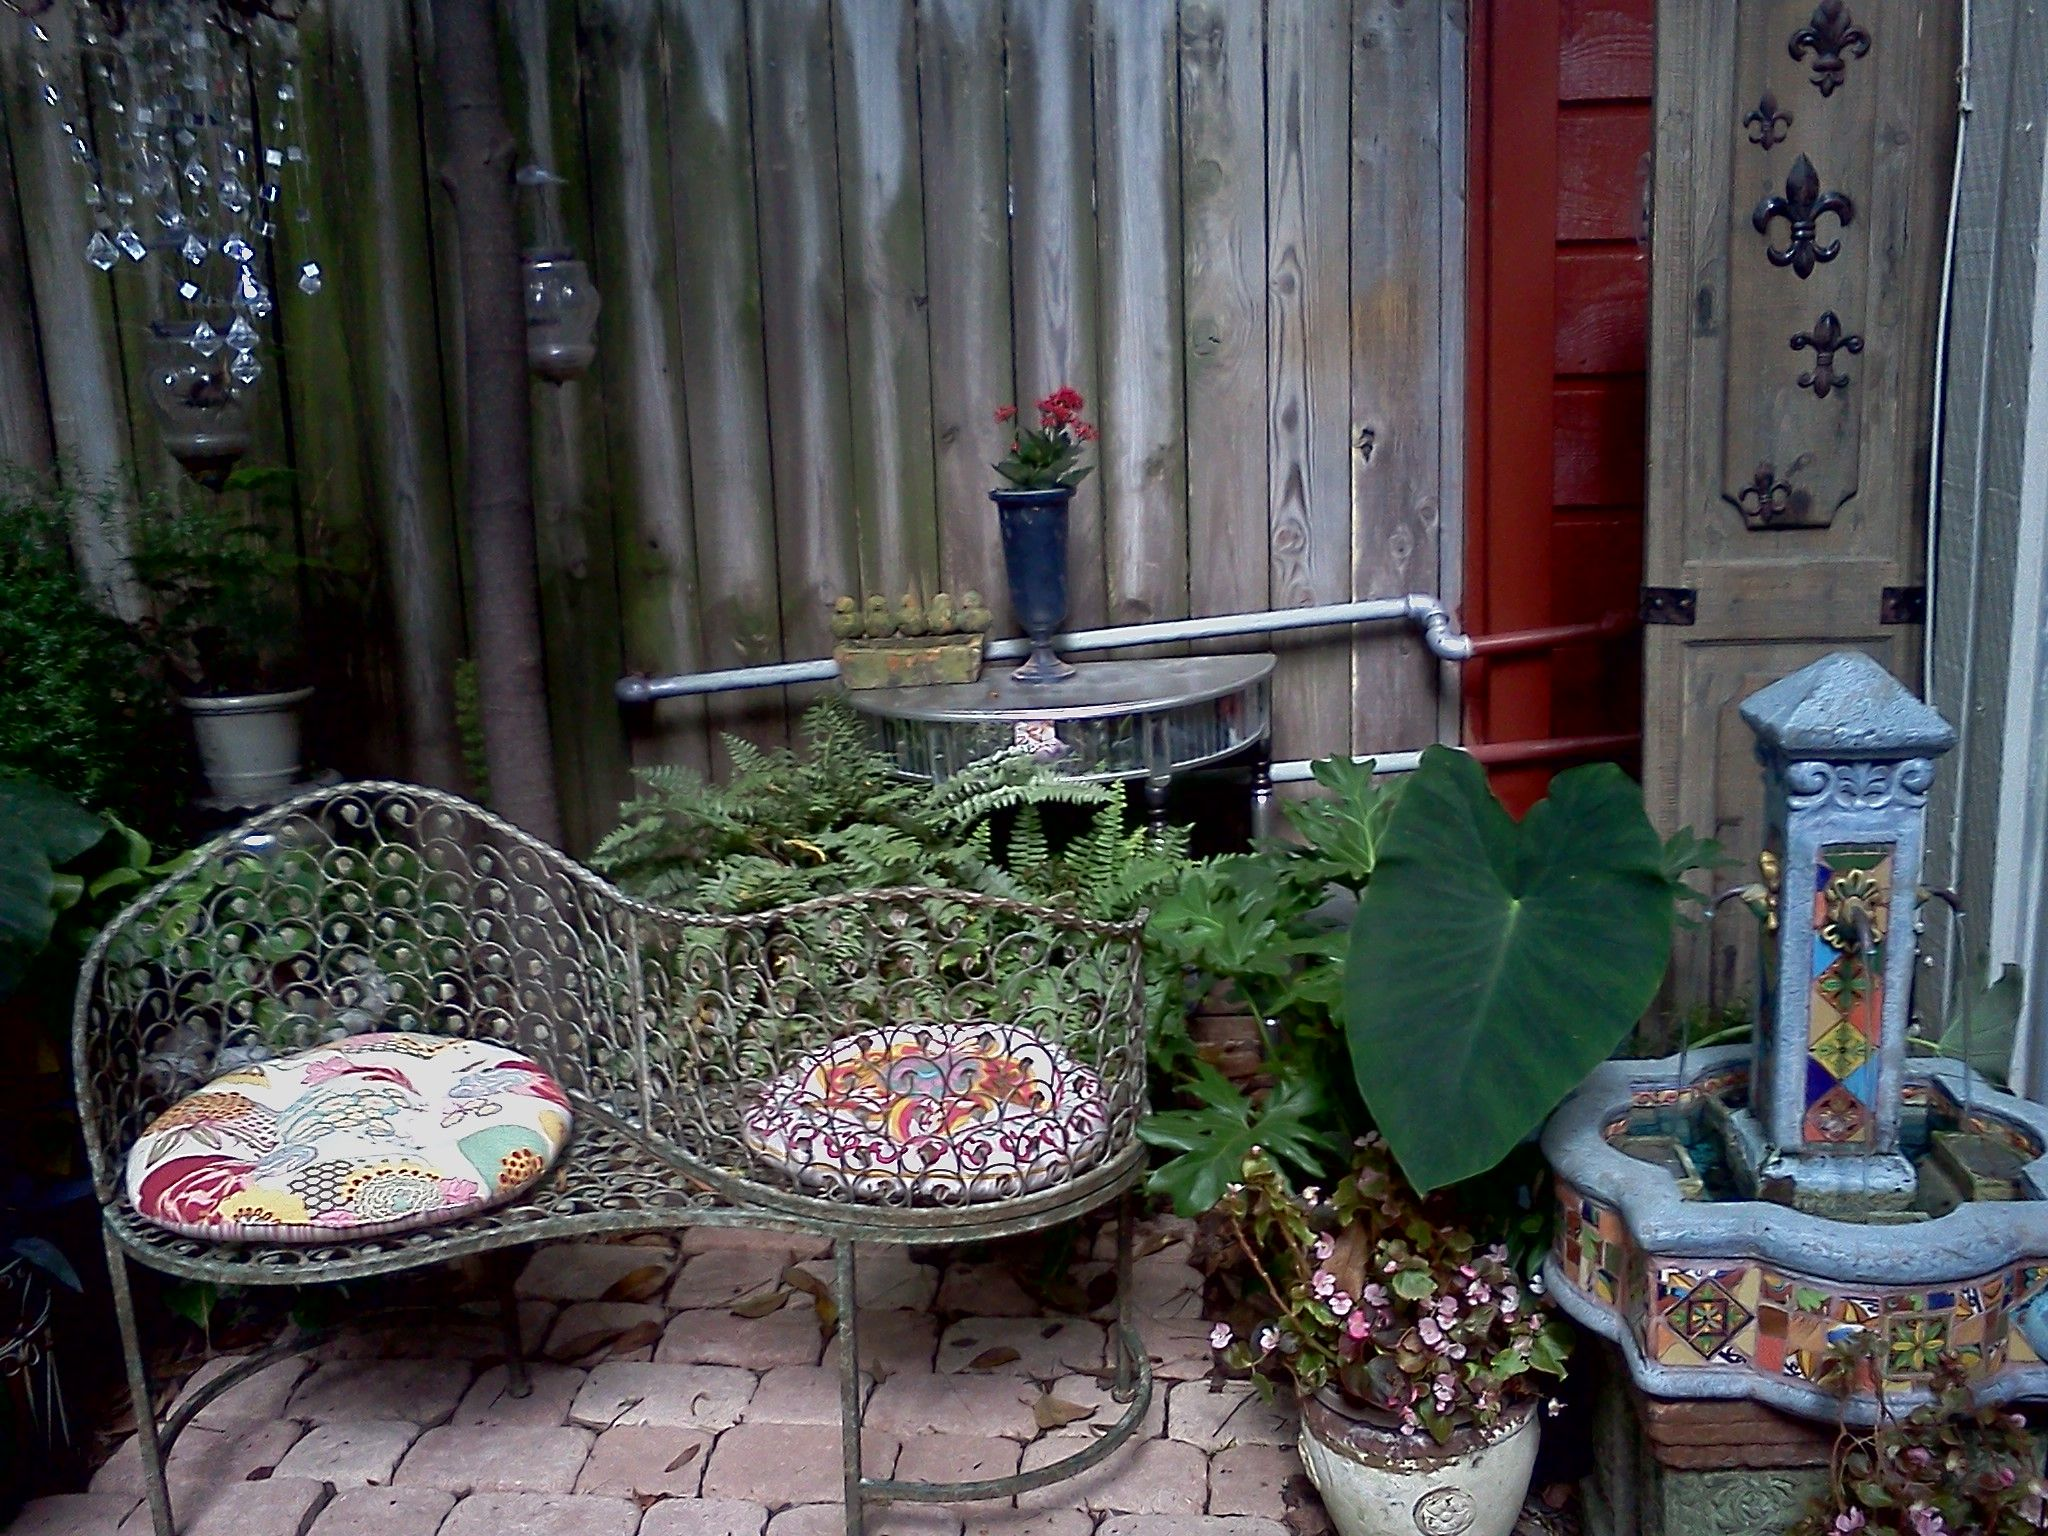 My Backyard. I Added The Old Door Panel (right Side) To Hid The